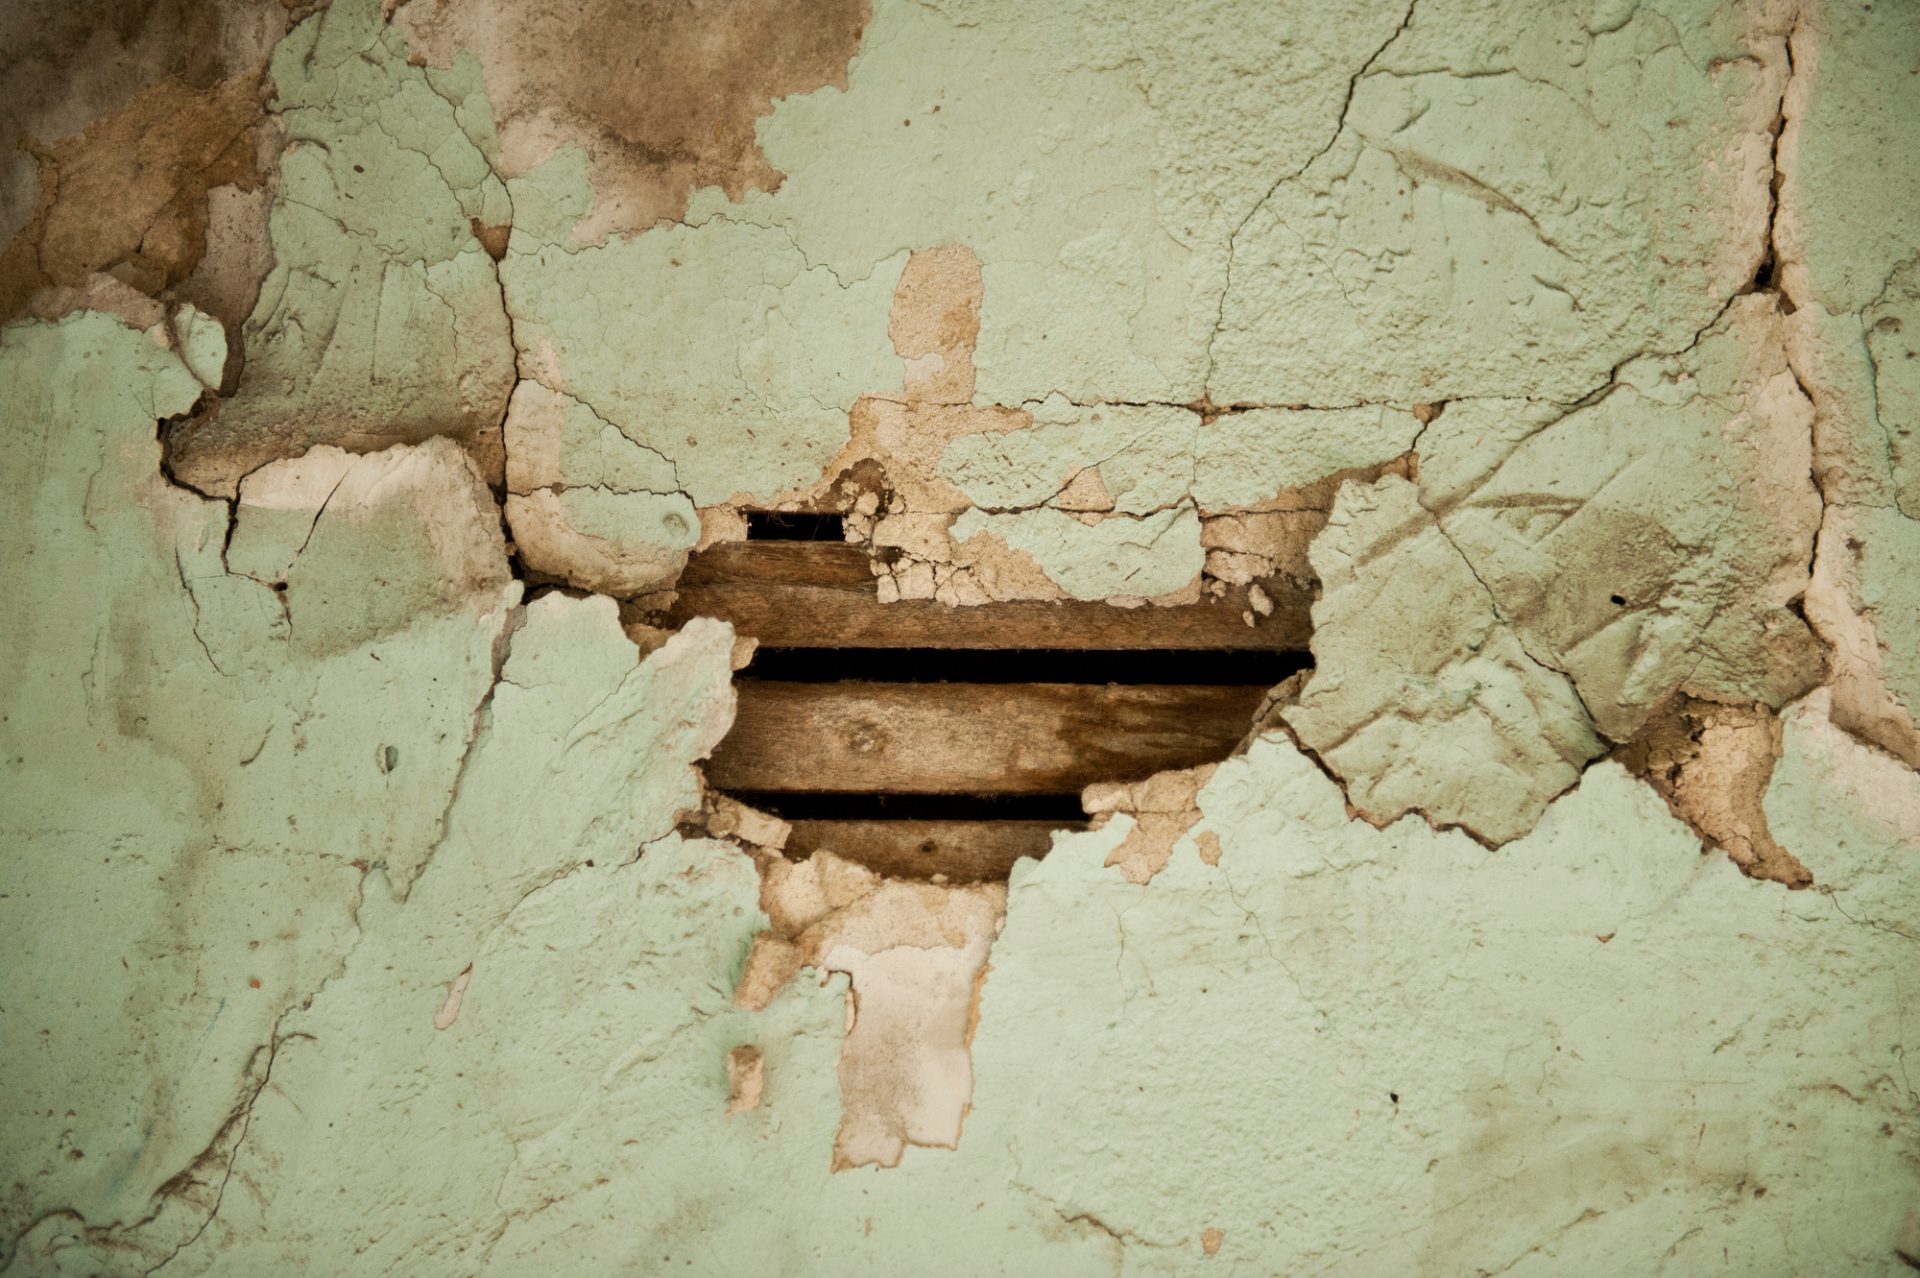 Photo: A deteriorating wall in an abandoned house in Otoe County, Nebraska.